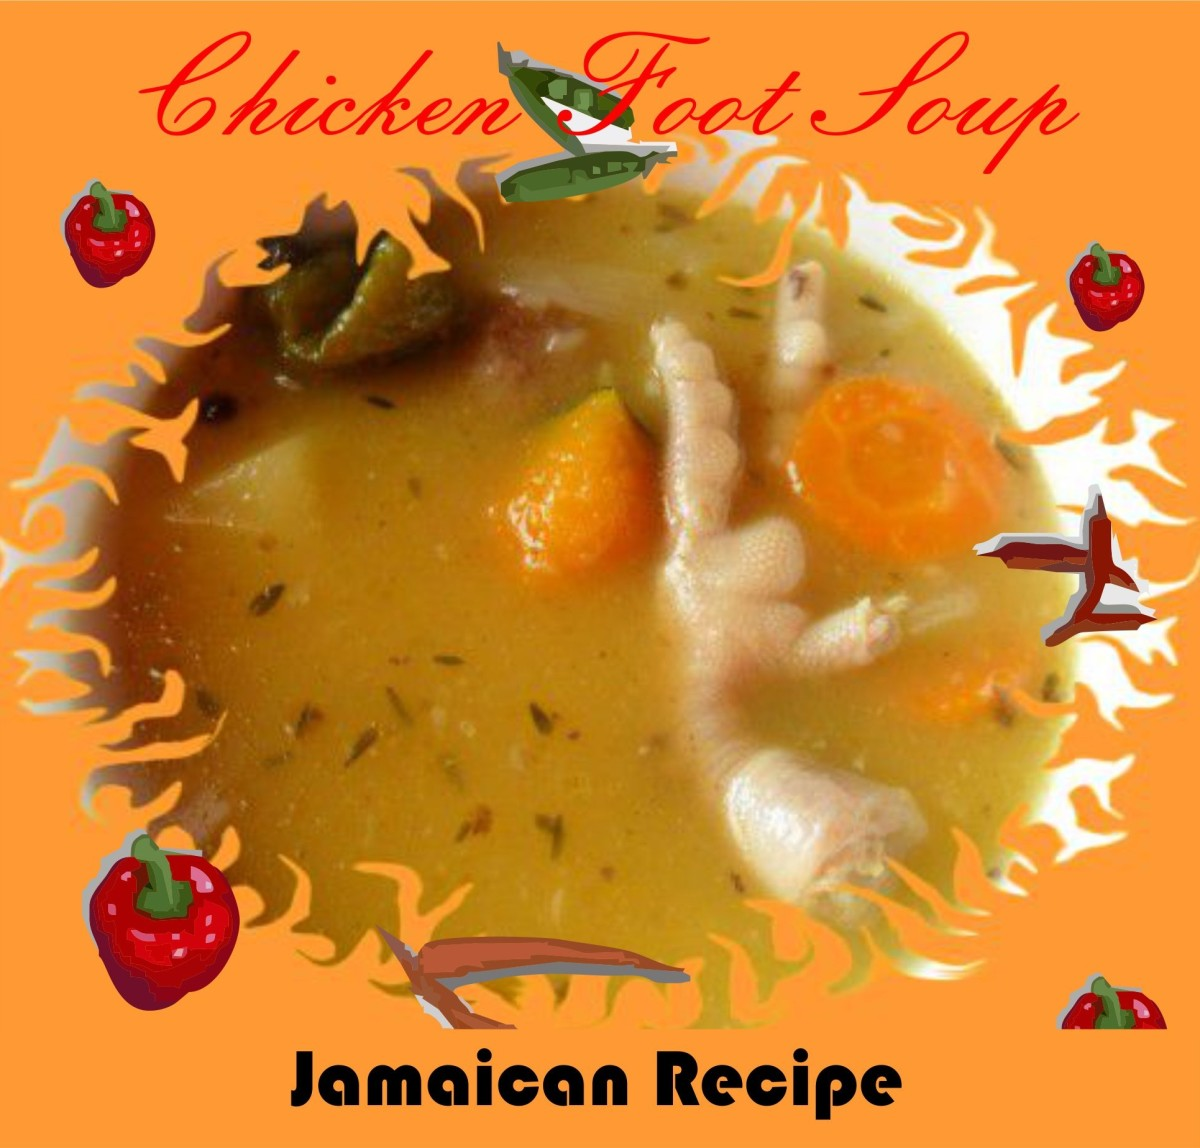 Learn how to make the traditional Jamaican chicken foot soup.